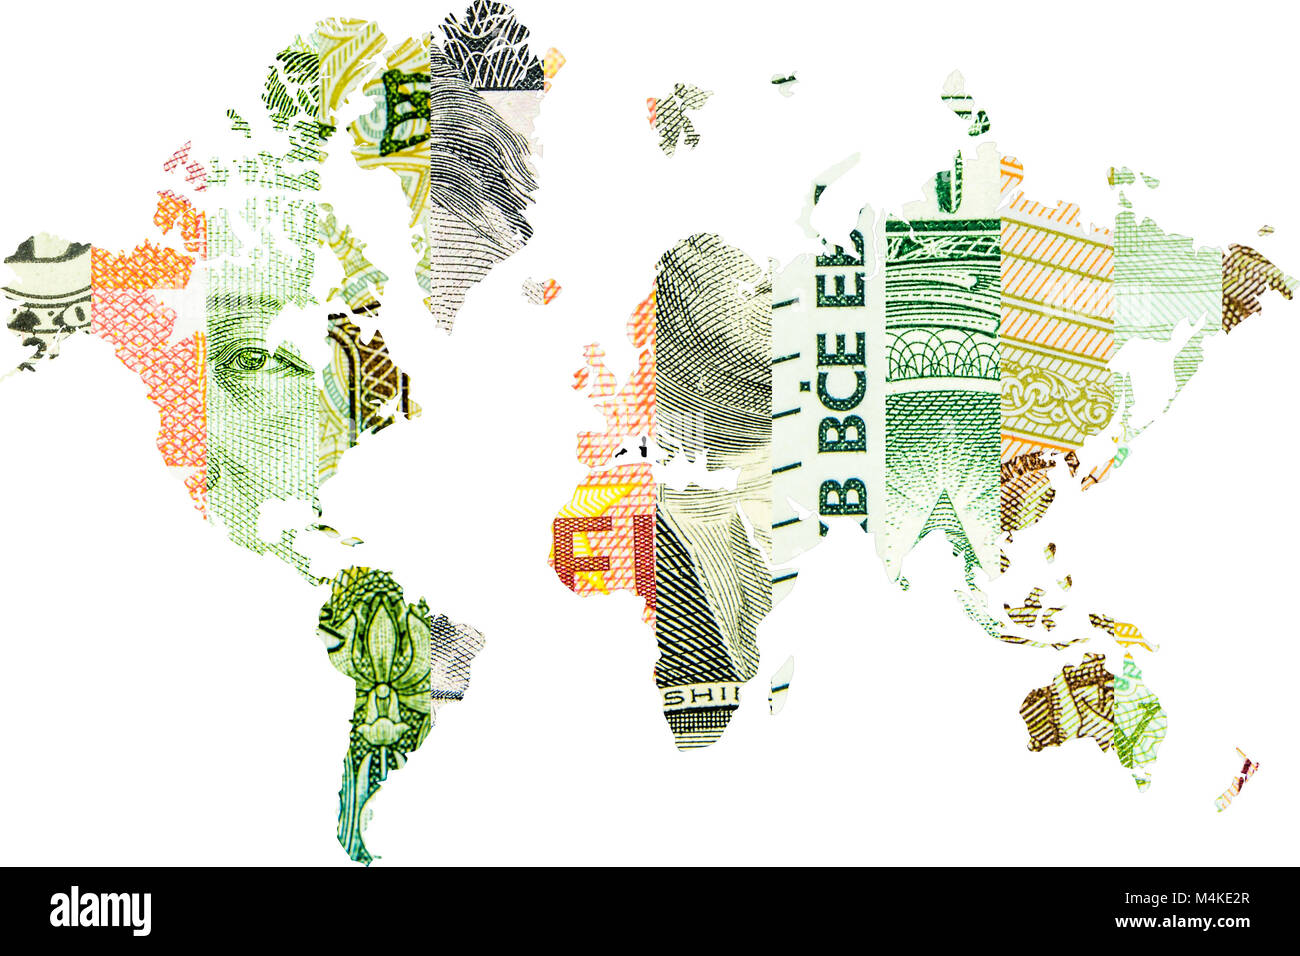 worldwide usage of american dollar, euro, chinese yuan and russian ruble, - Stock Image